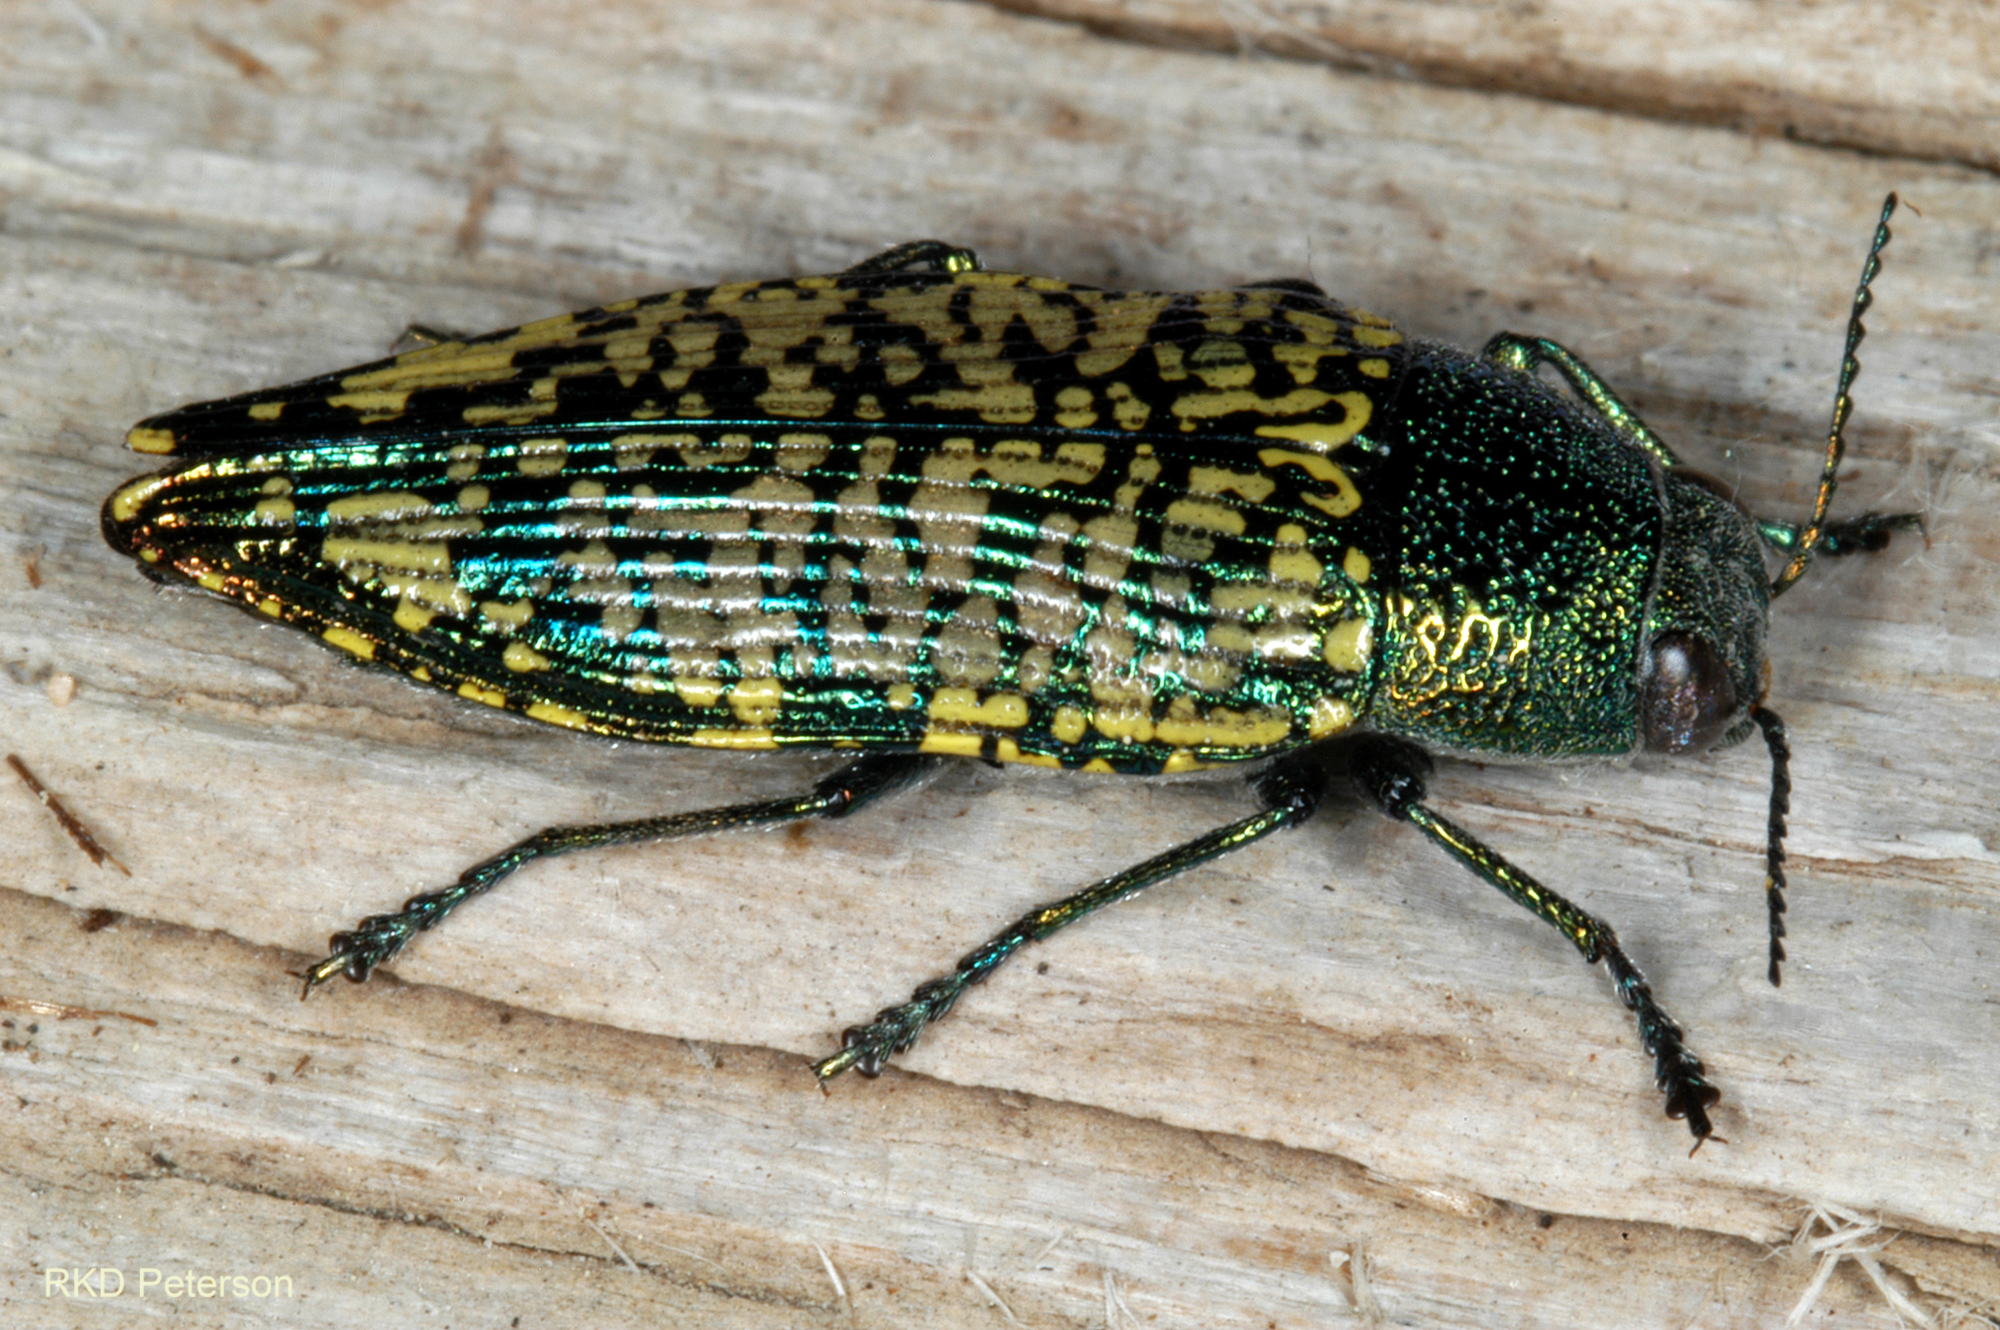 metallic dark green, yellow, and teal beetle Buprestis confluenta